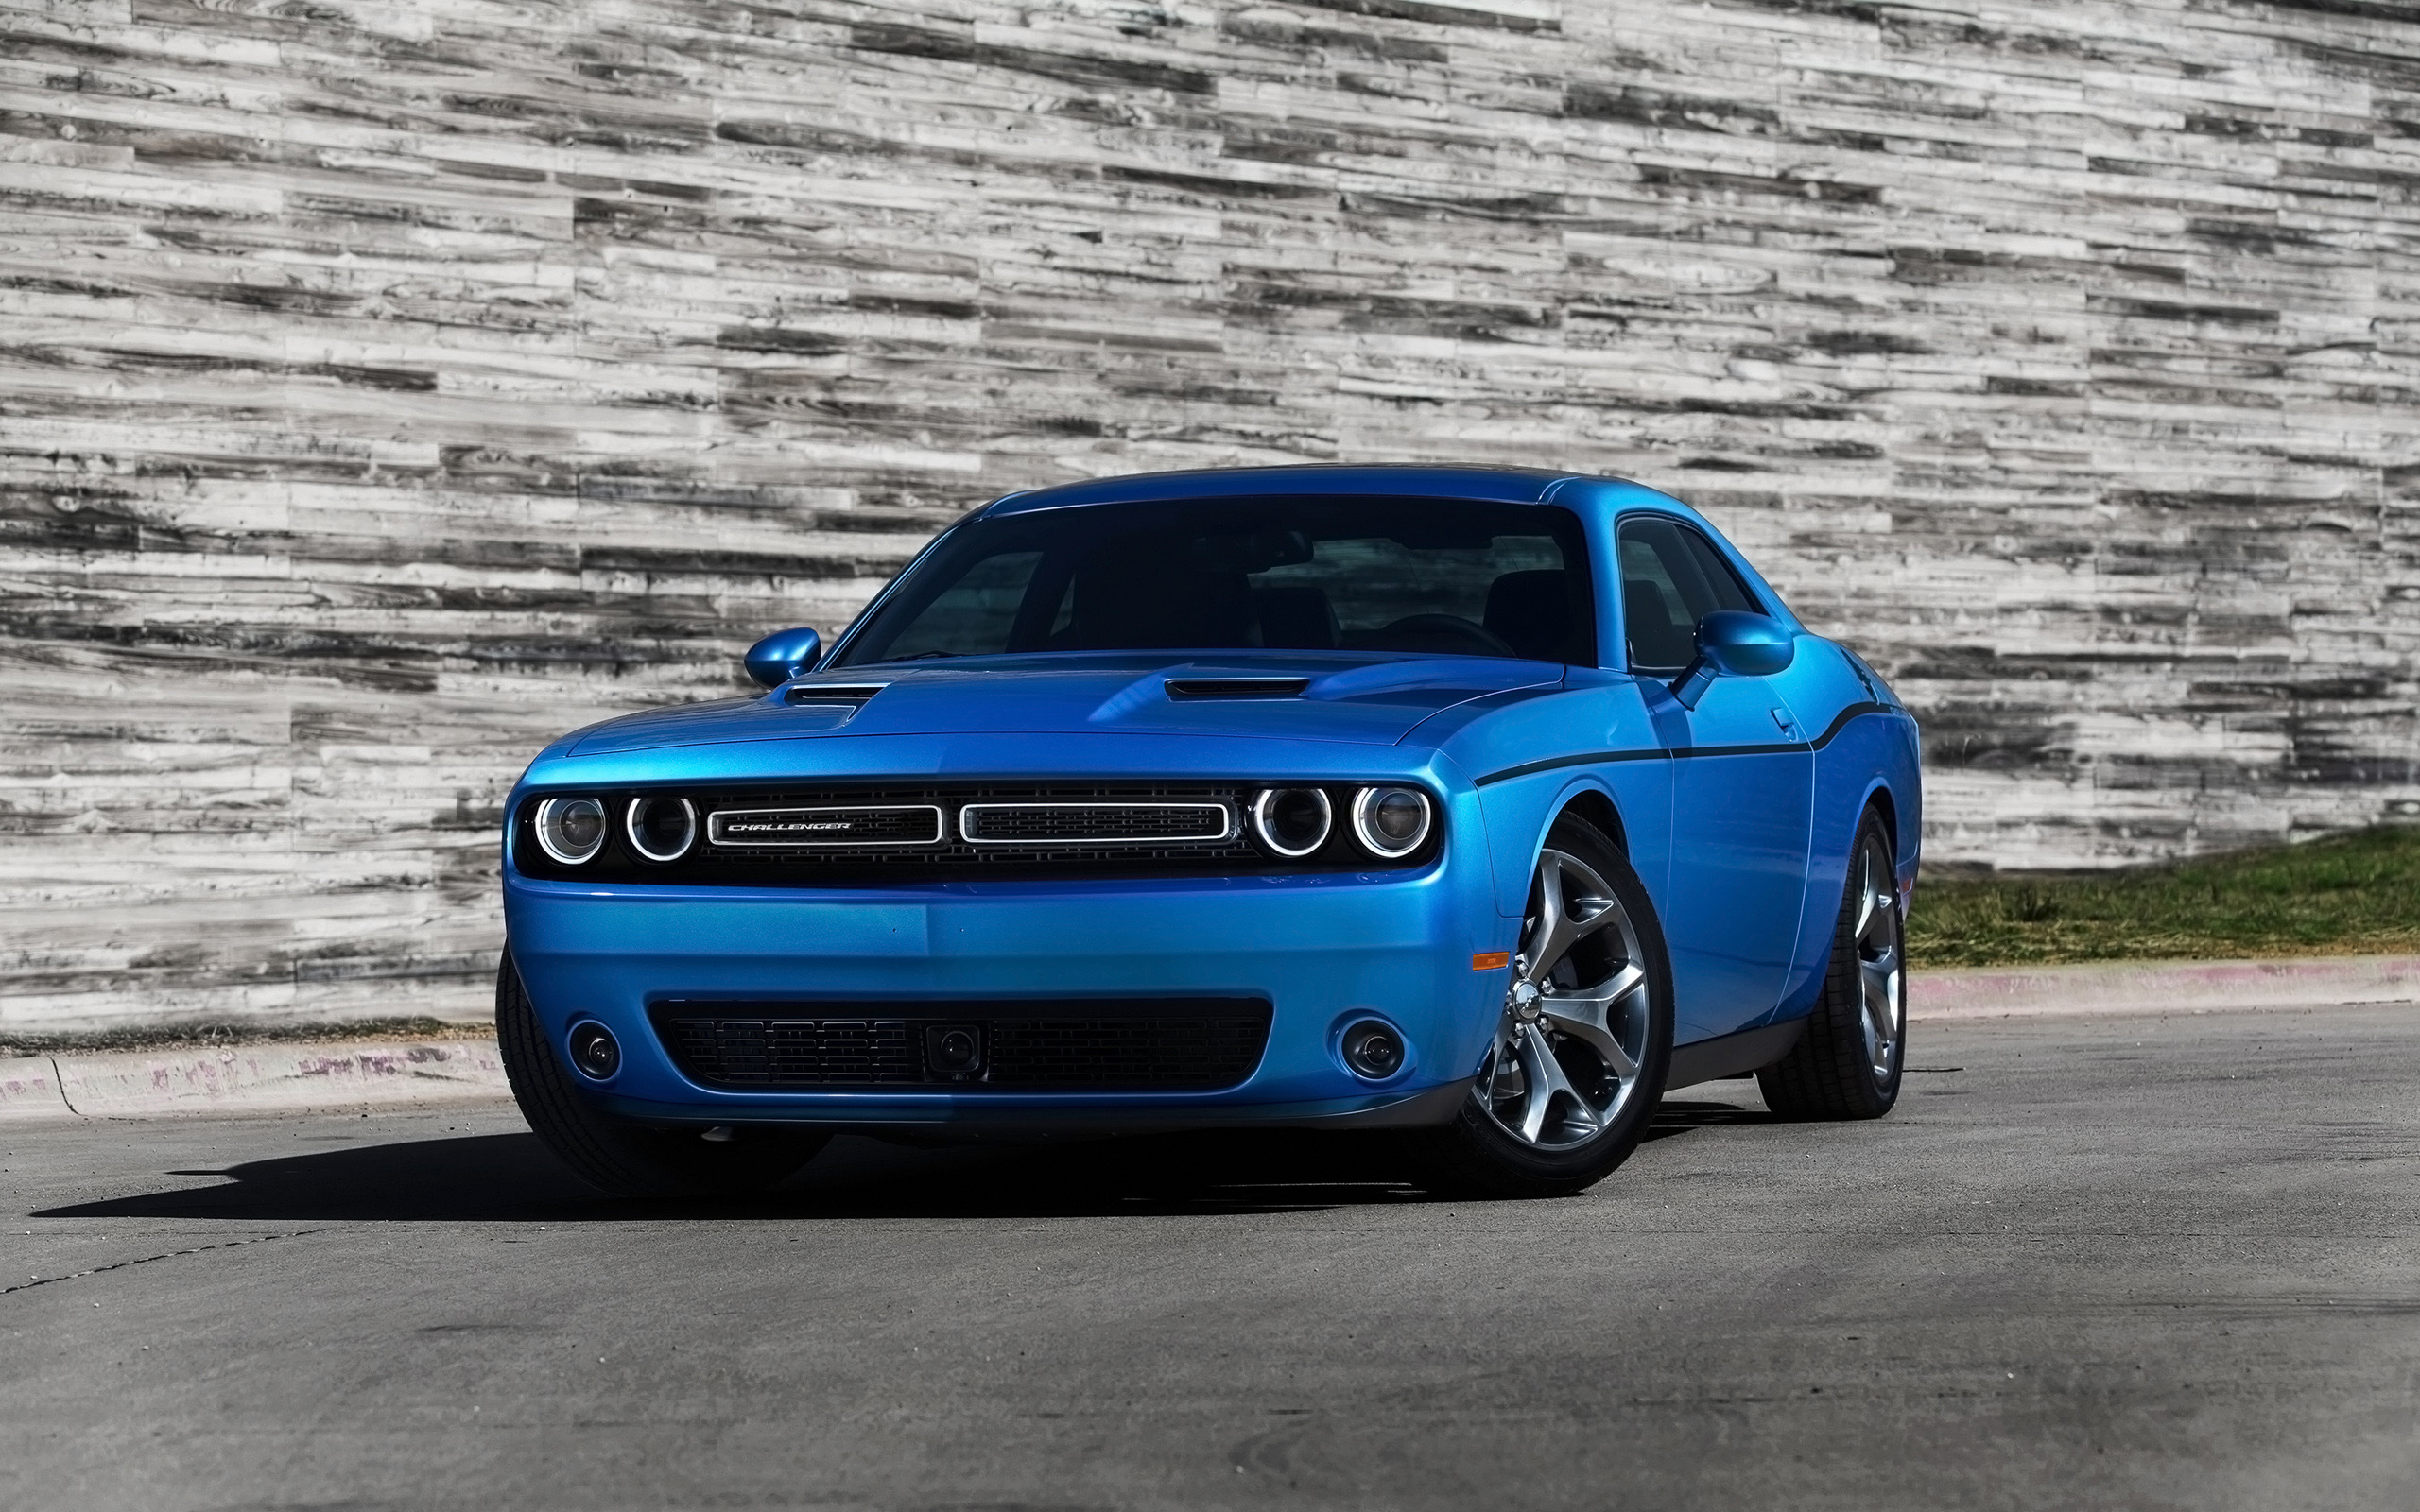 2015 dodge challenger blue wallpaper | hd car wallpapers | id #4402